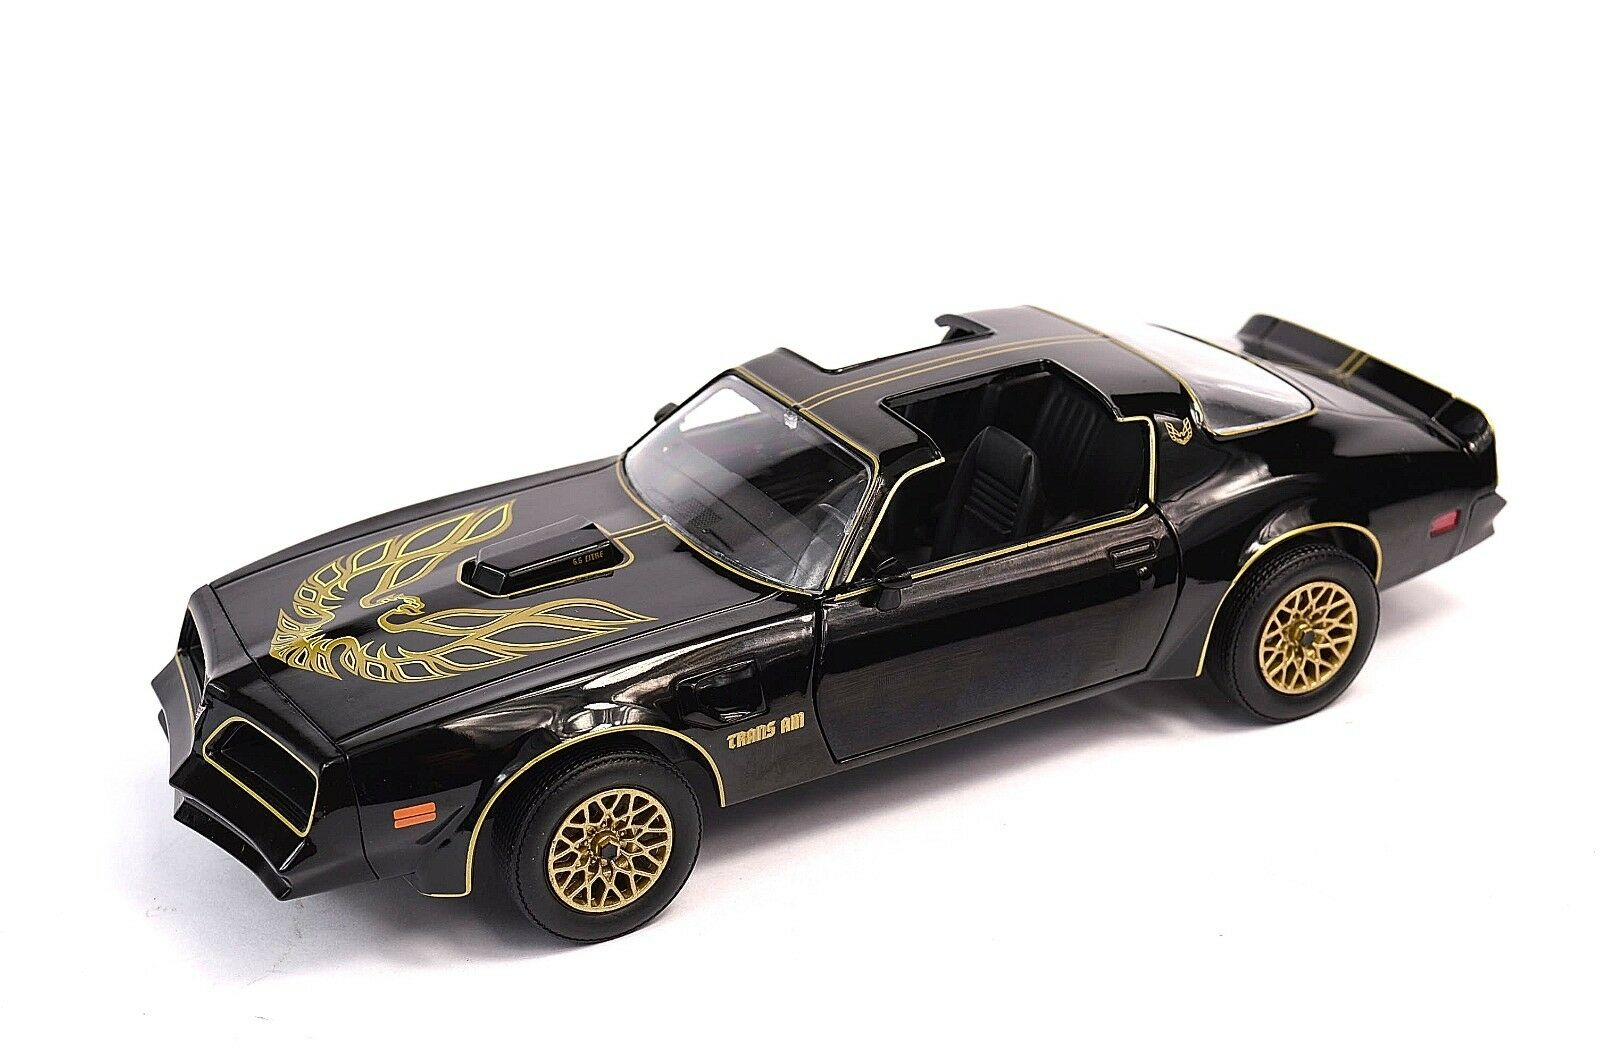 Smokey and the bandit trans am-5262